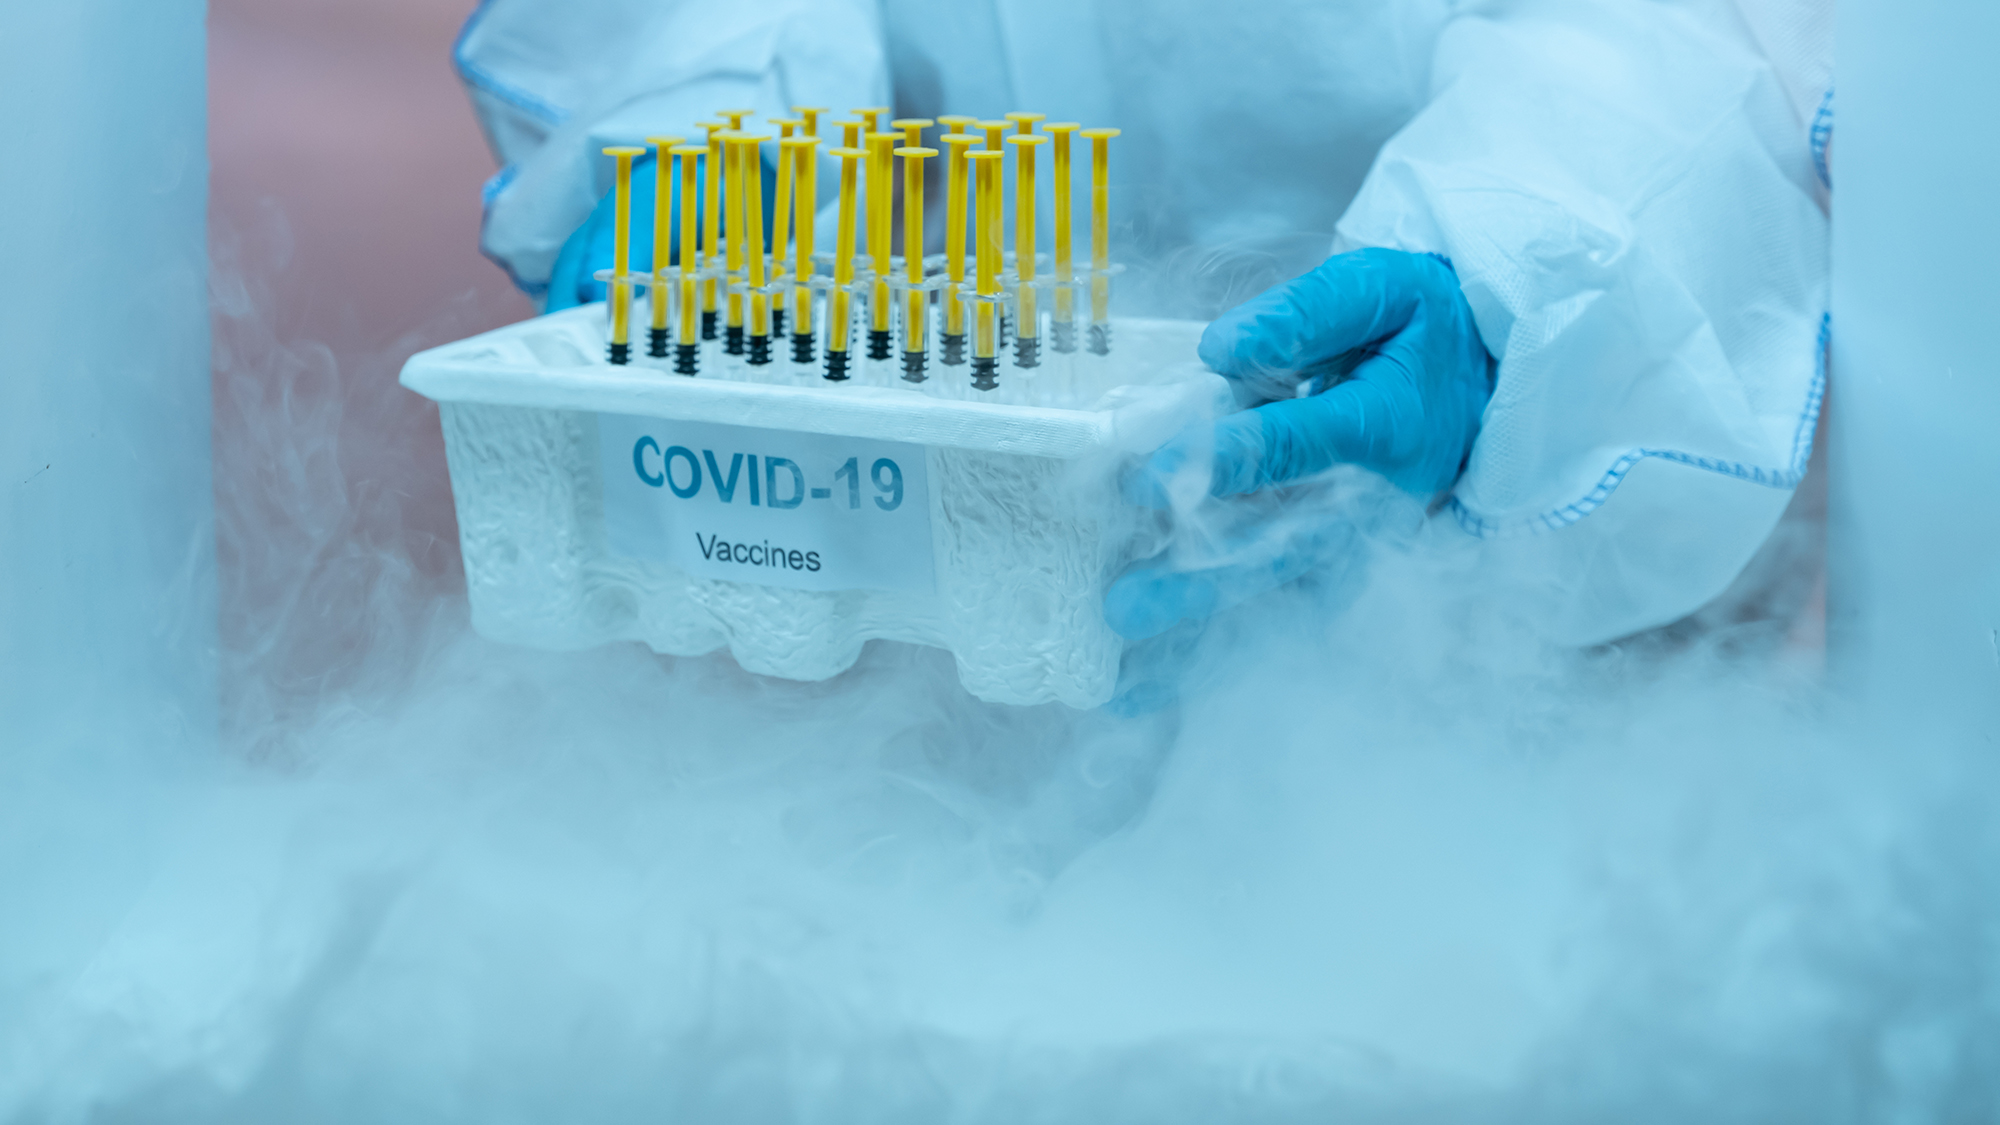 The Saft and Tadiran battery tech that ensures Covid-19 vaccine deliveries